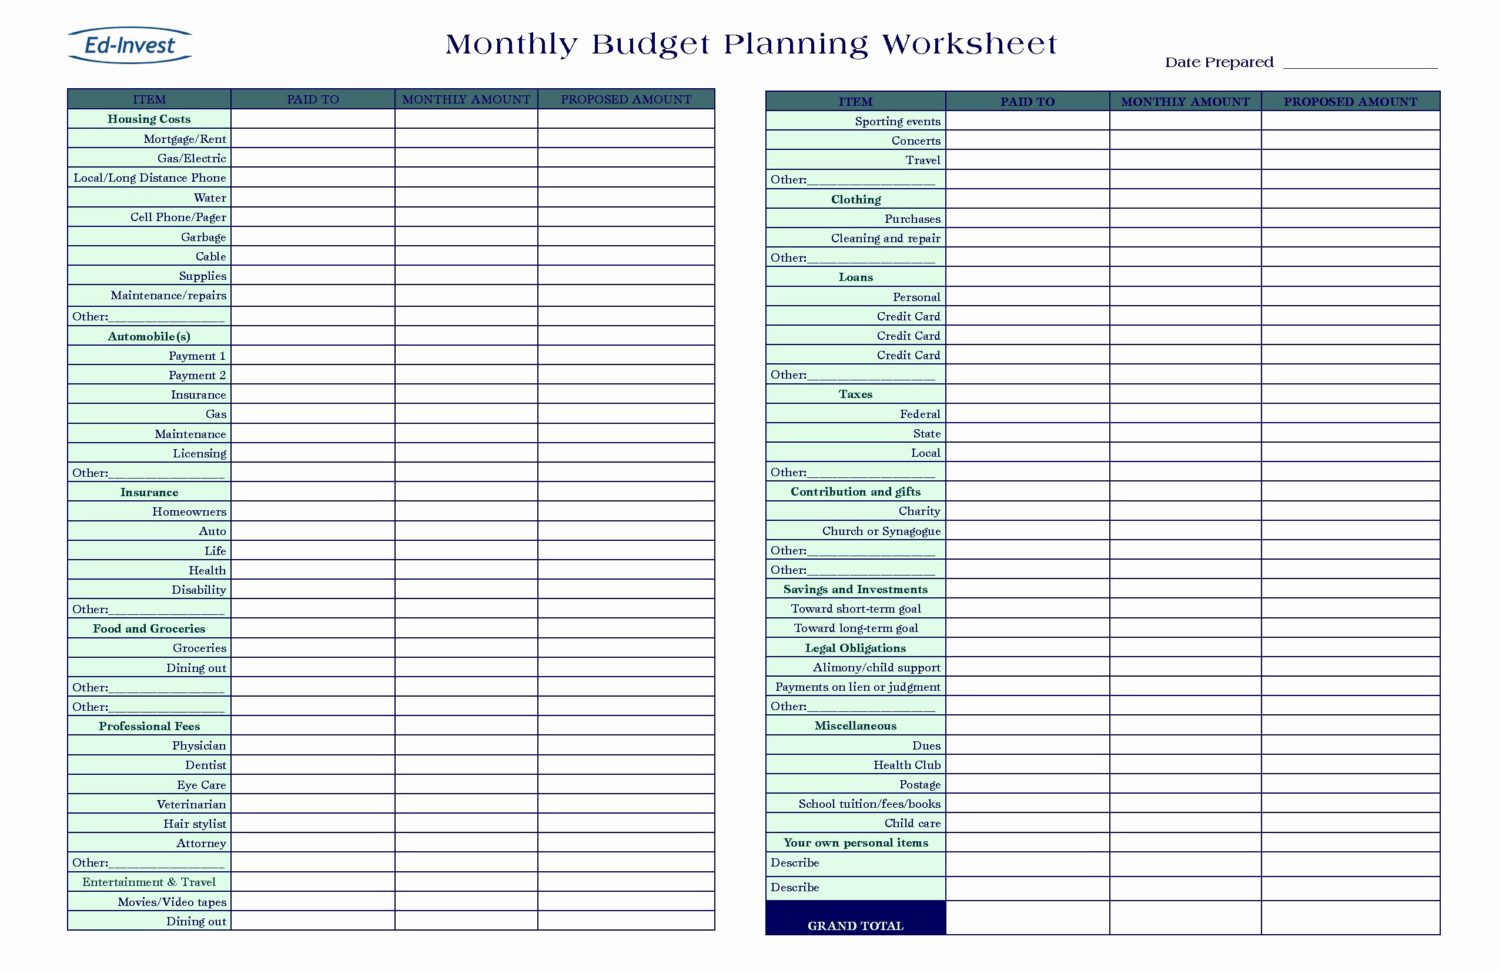 Excel Tax Spreadsheet Intended For Small Business Tax Spreadsheet Template Free Downloads Spreadsheets